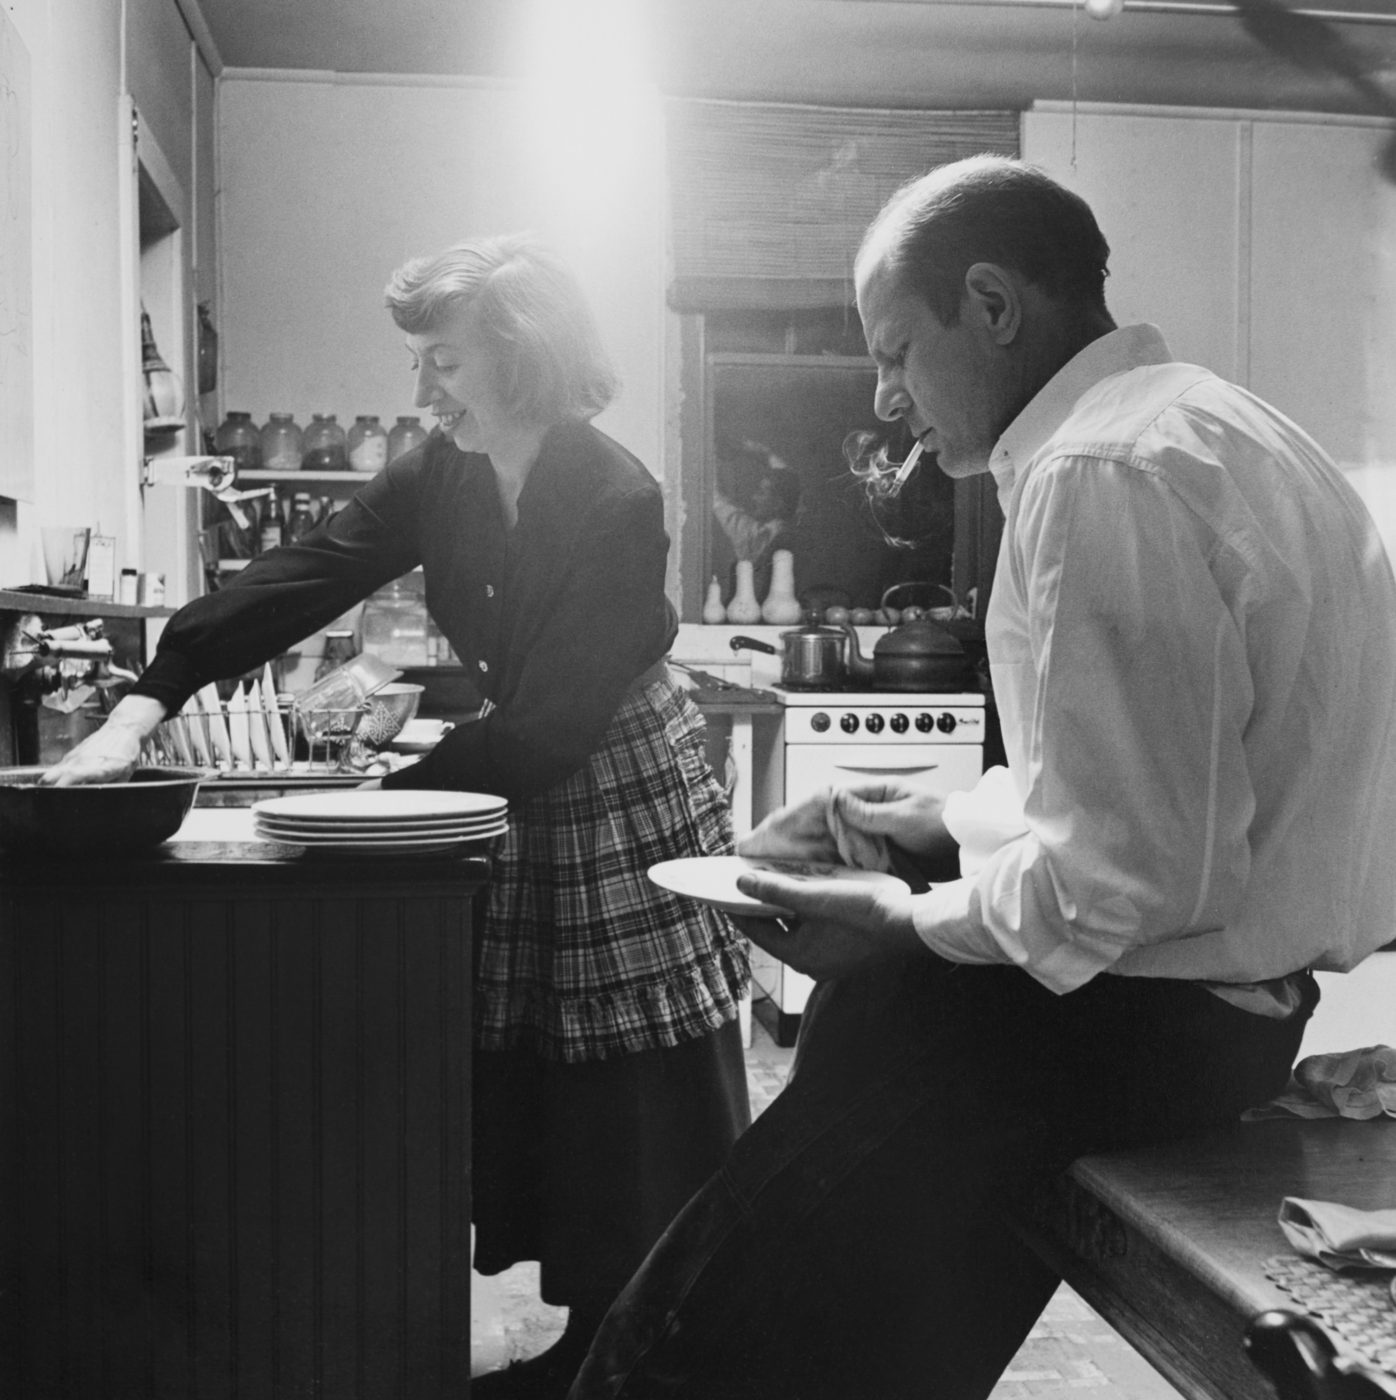 Lee Krasner and Jackson Pollock in their kitchen